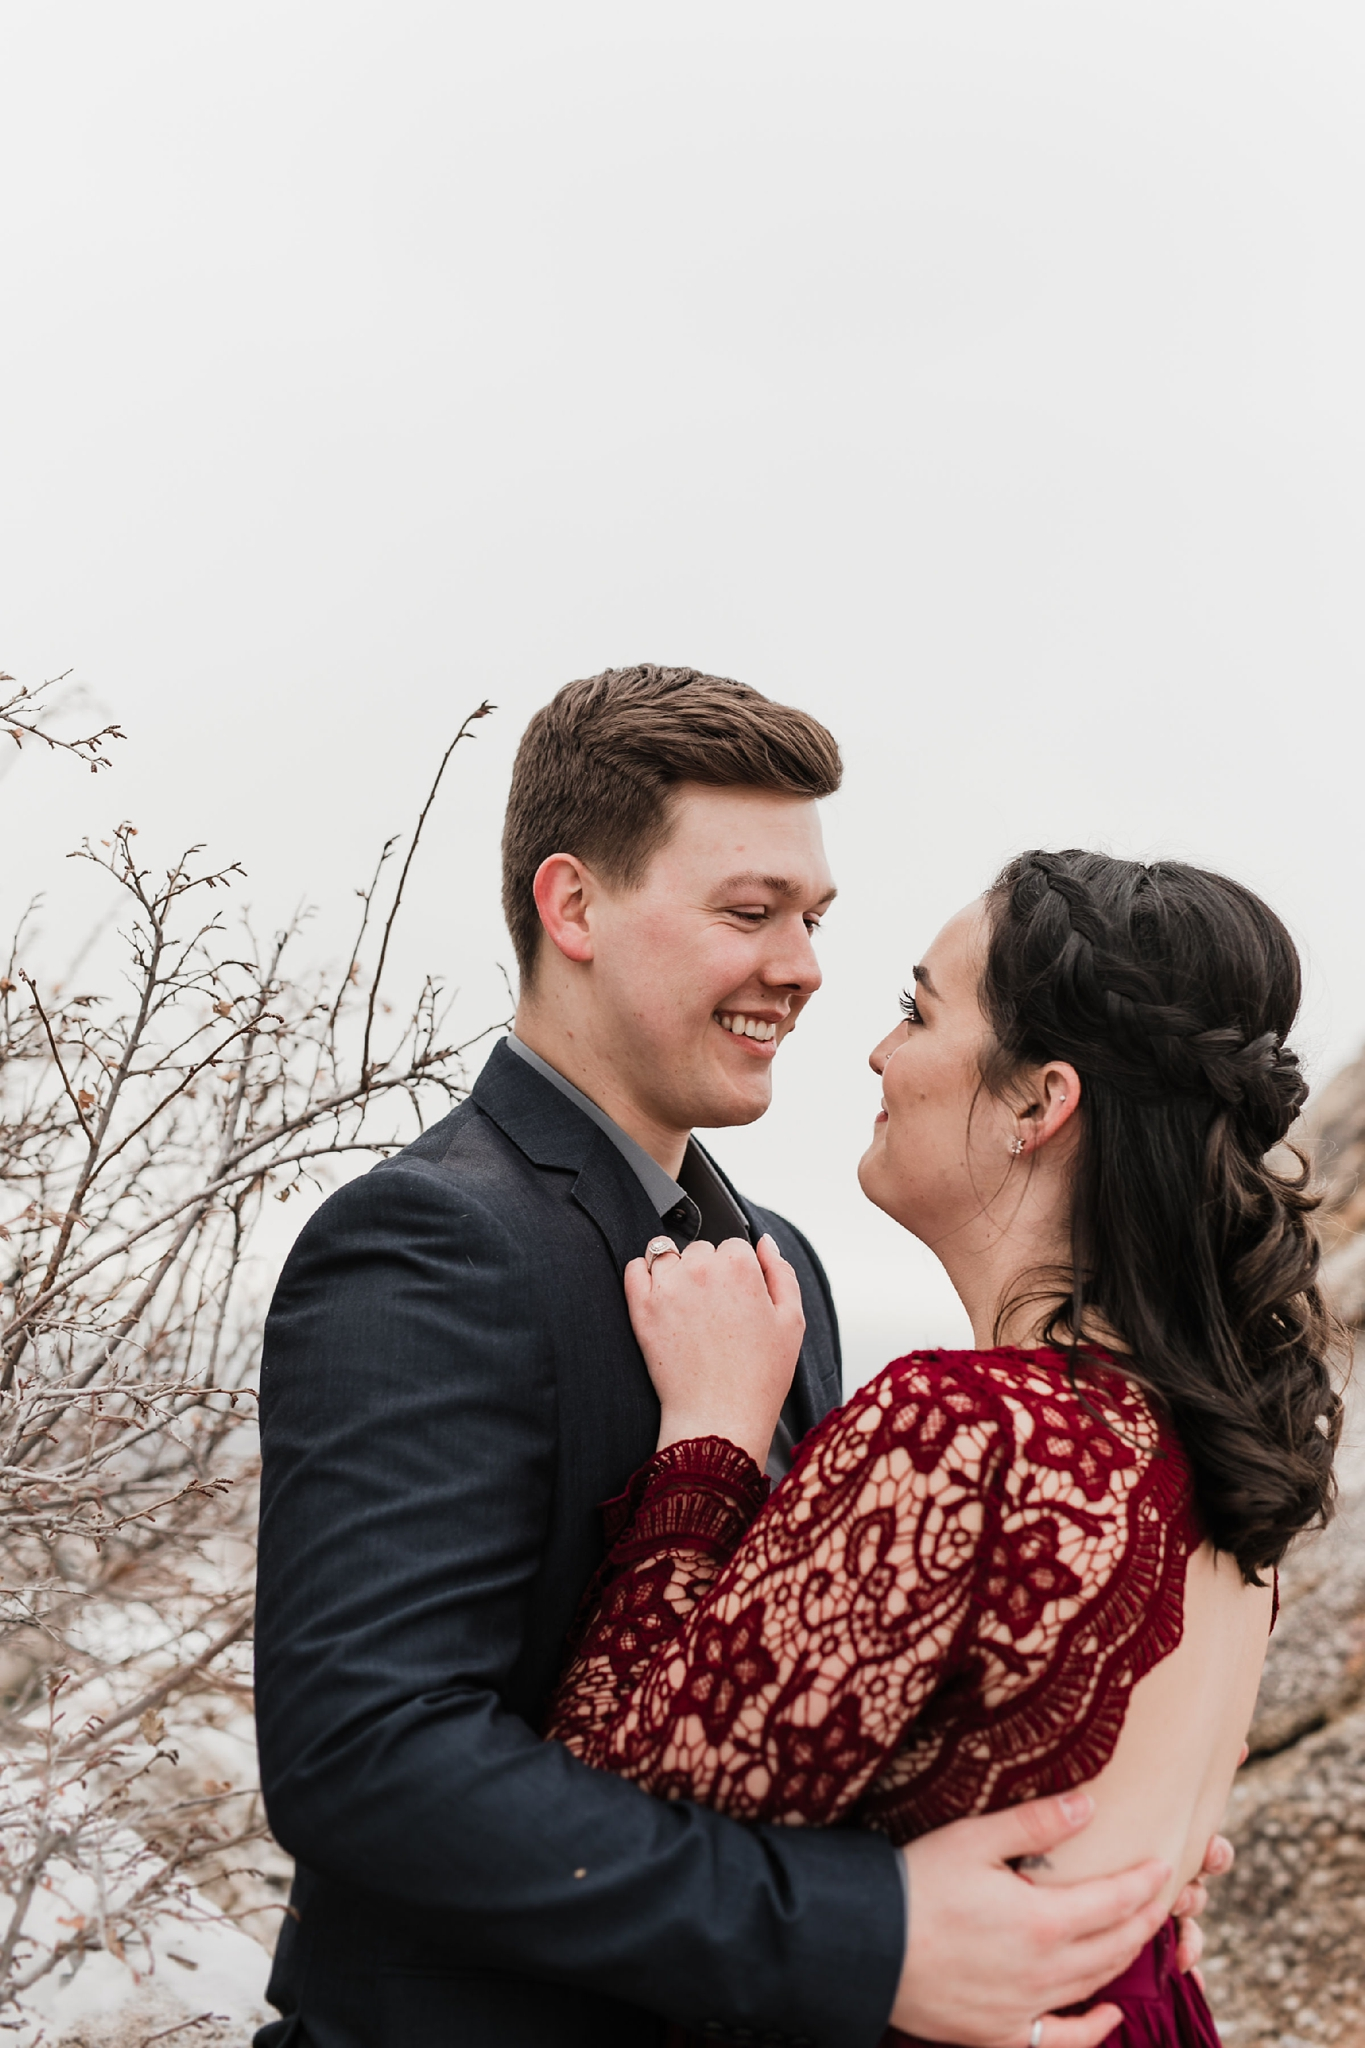 Alicia+lucia+photography+-+albuquerque+wedding+photographer+-+santa+fe+wedding+photography+-+new+mexico+wedding+photographer+-+new+mexico+wedding+-+engagement+-+albuquerque+engagement+-+winter+engagement+-+hyatt+tamaya+wedding_0006.jpg